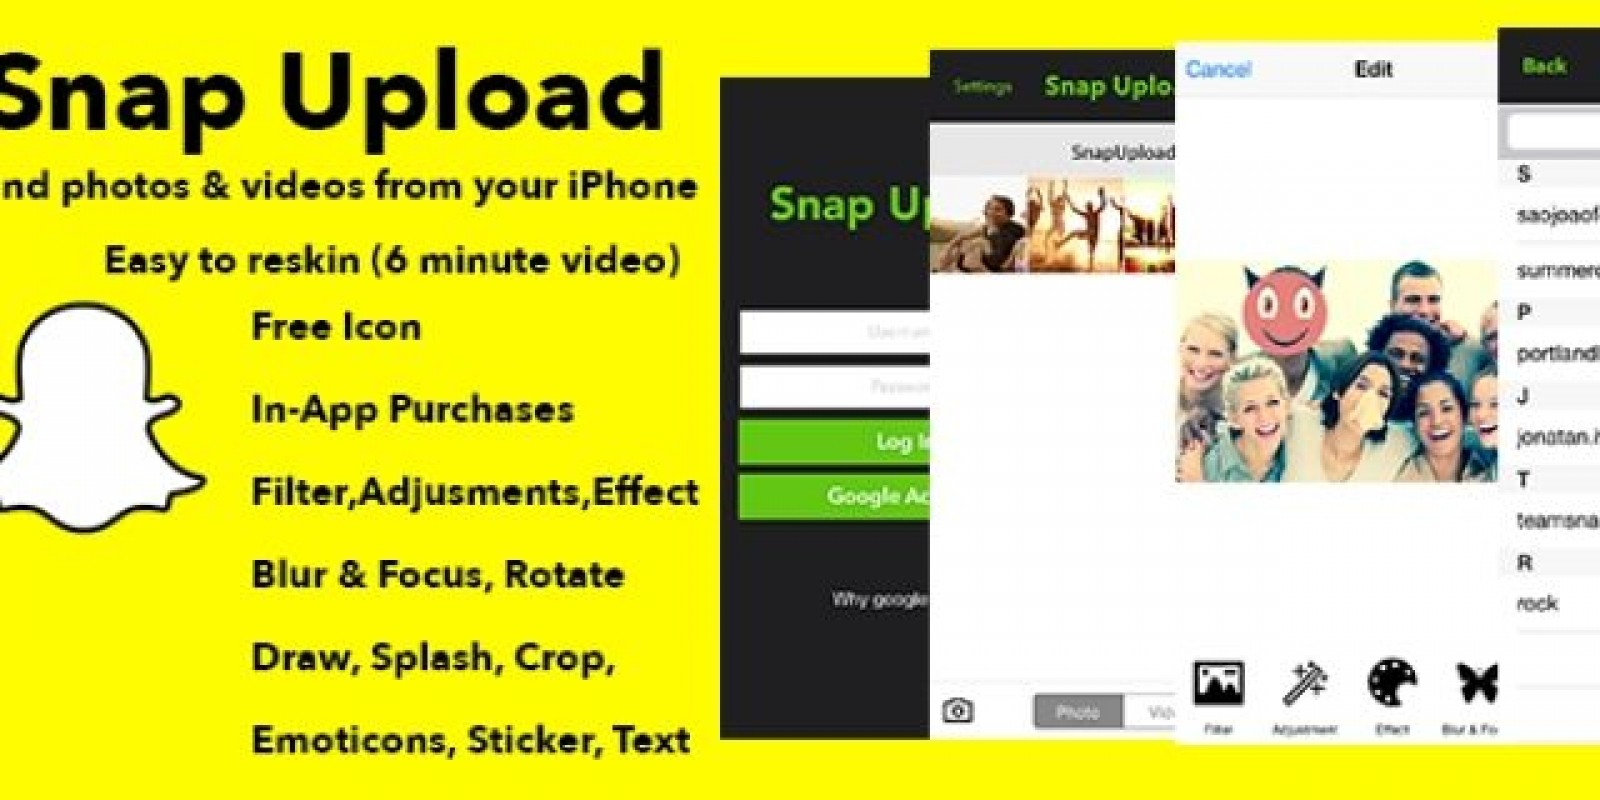 Snap upload ios app source code social network app templates for snap upload ios app source code ccuart Gallery